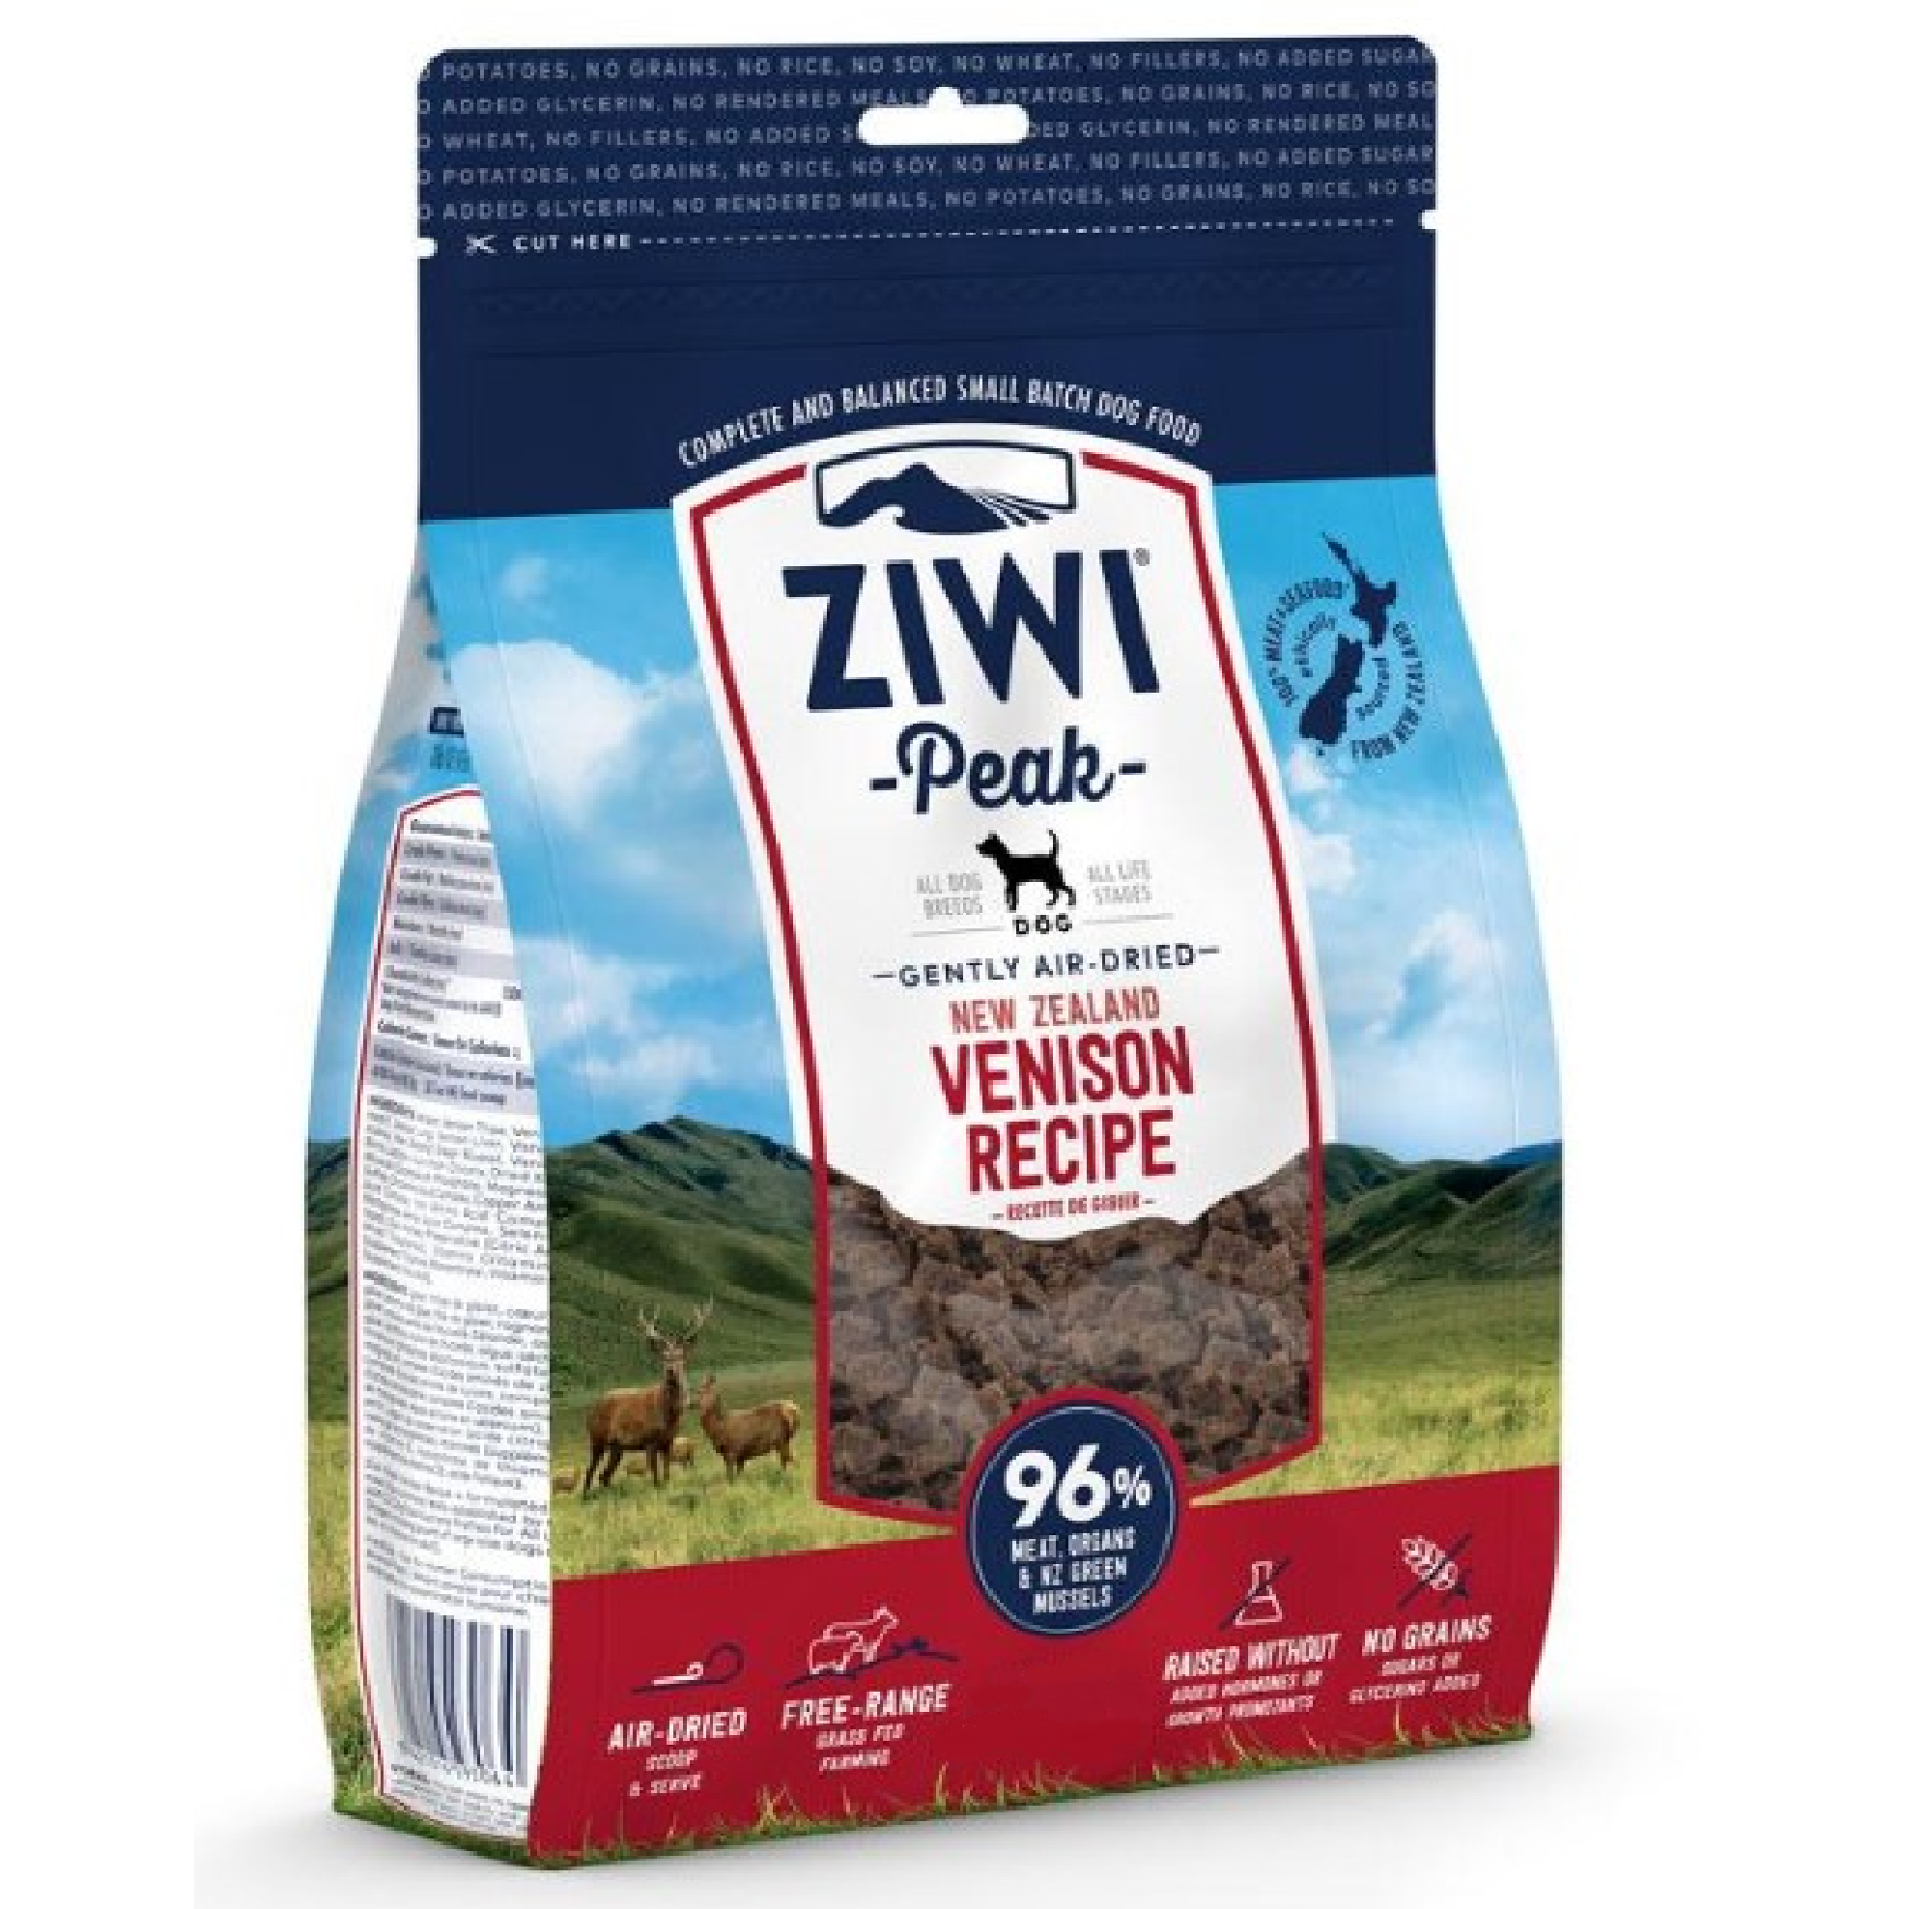 Ziwi Peak Dog Air-Dried Venison